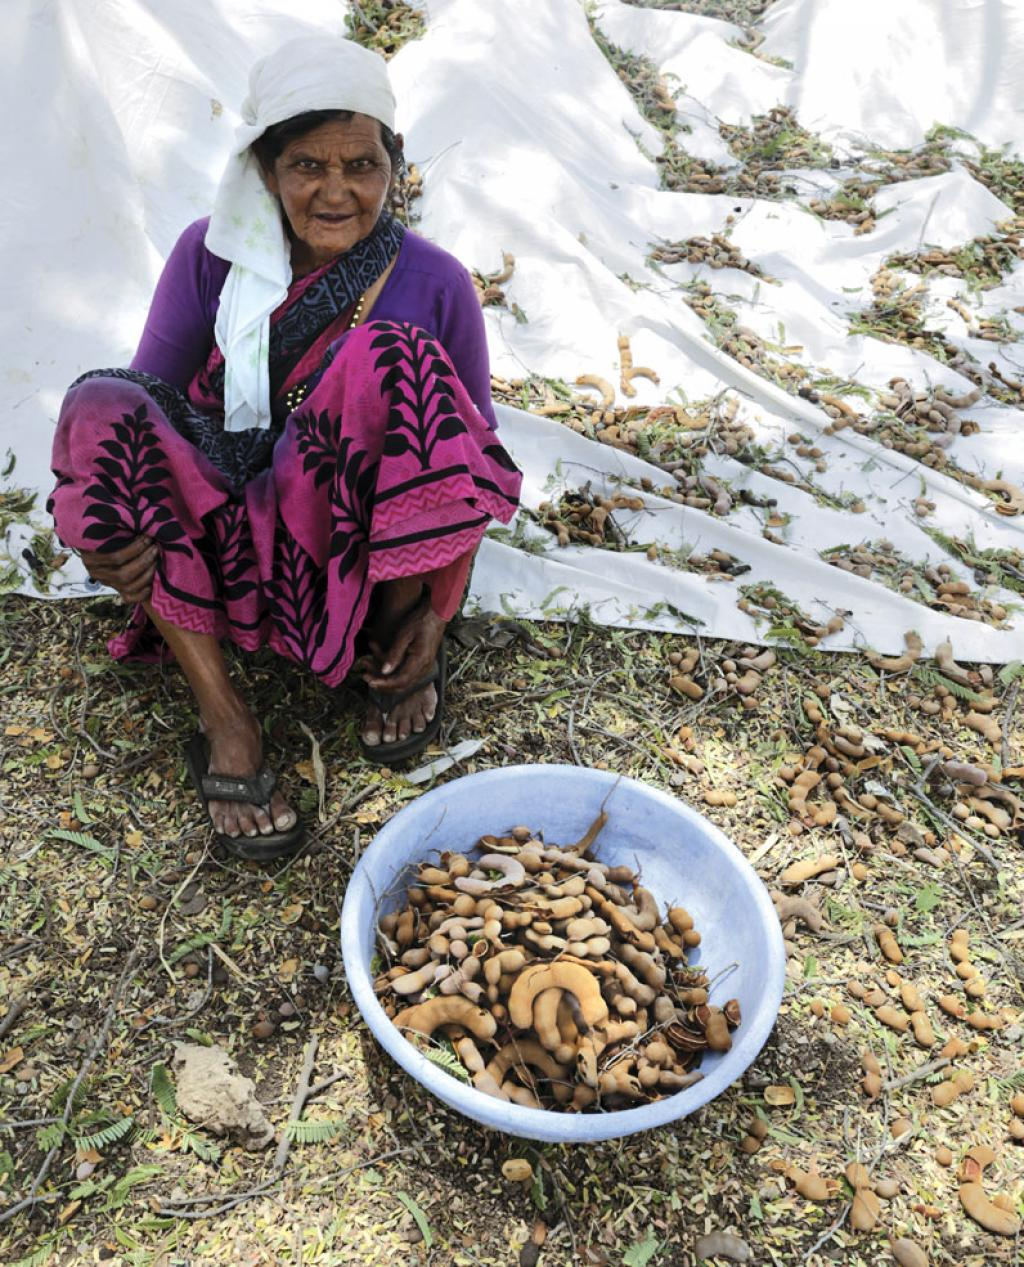 Over 90 per cent of tamarind in India is collected from forests by tribal communities (Photo: Vikas Choudhary)